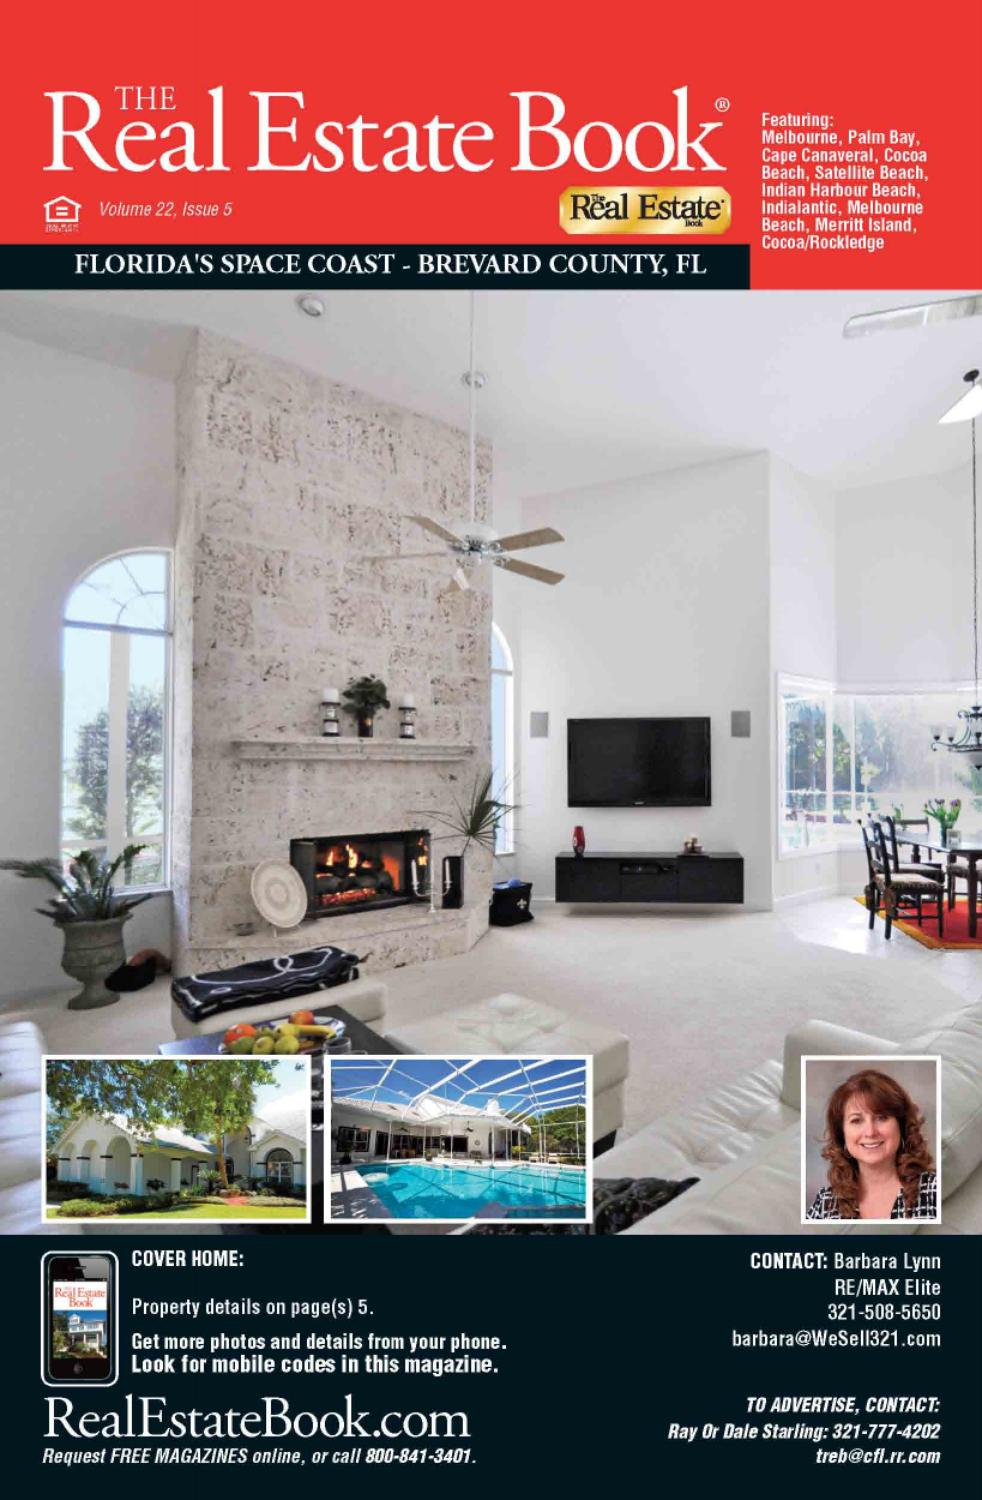 the real estate book of florida space coast brevard county by dale